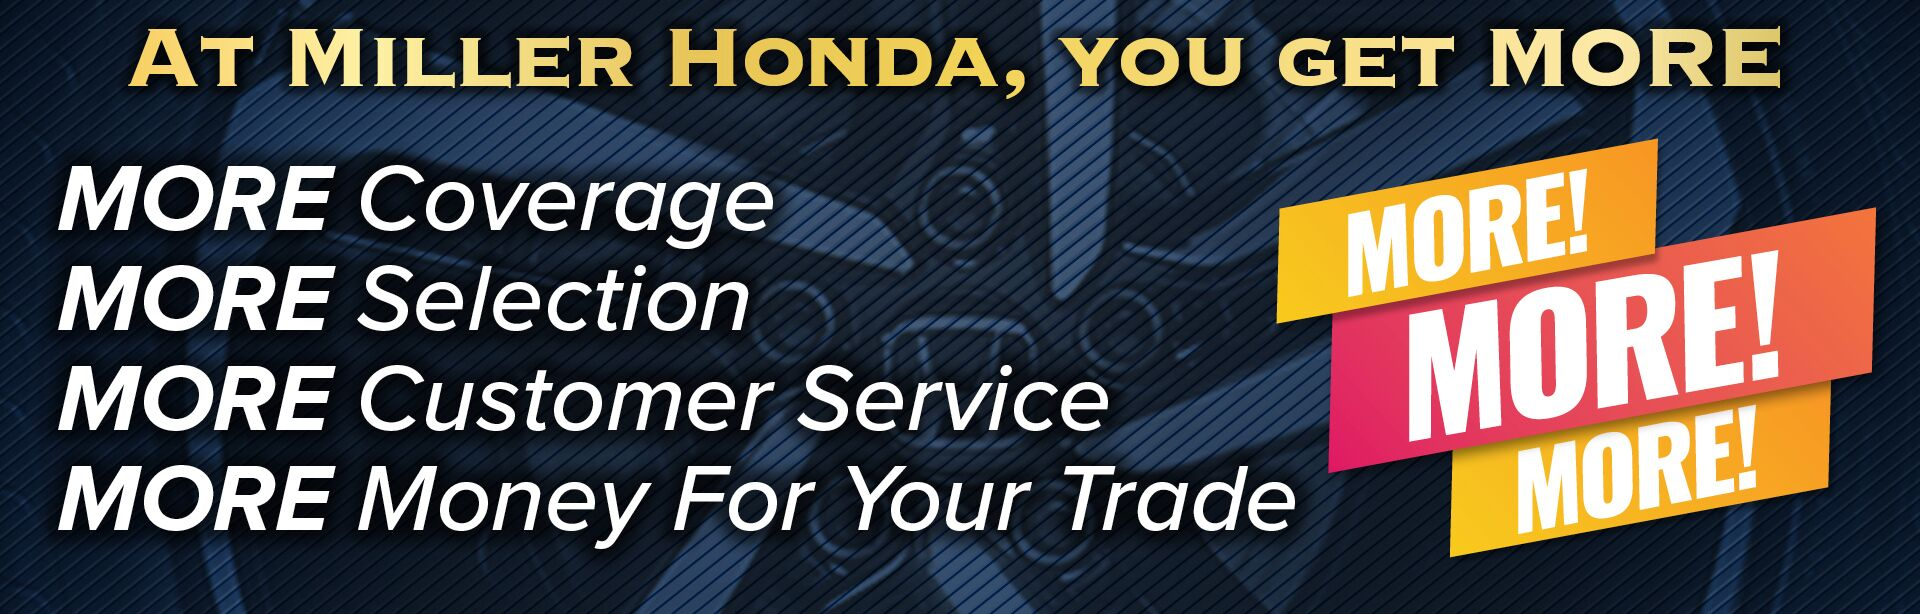 At Miller Honda You Get More!